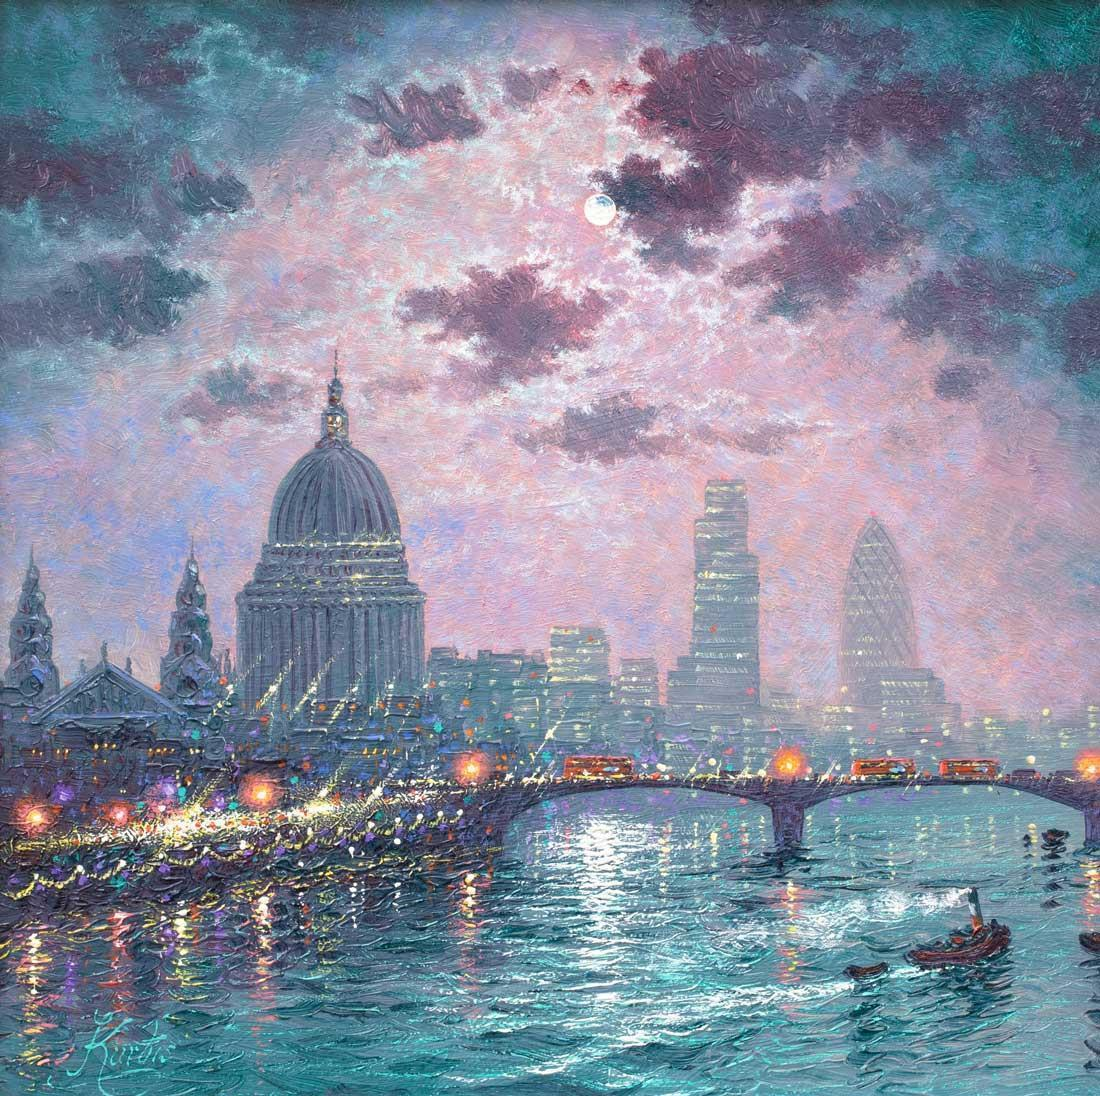 As the Thames Sparkles - Original Andrew Grant Kurtis Framed